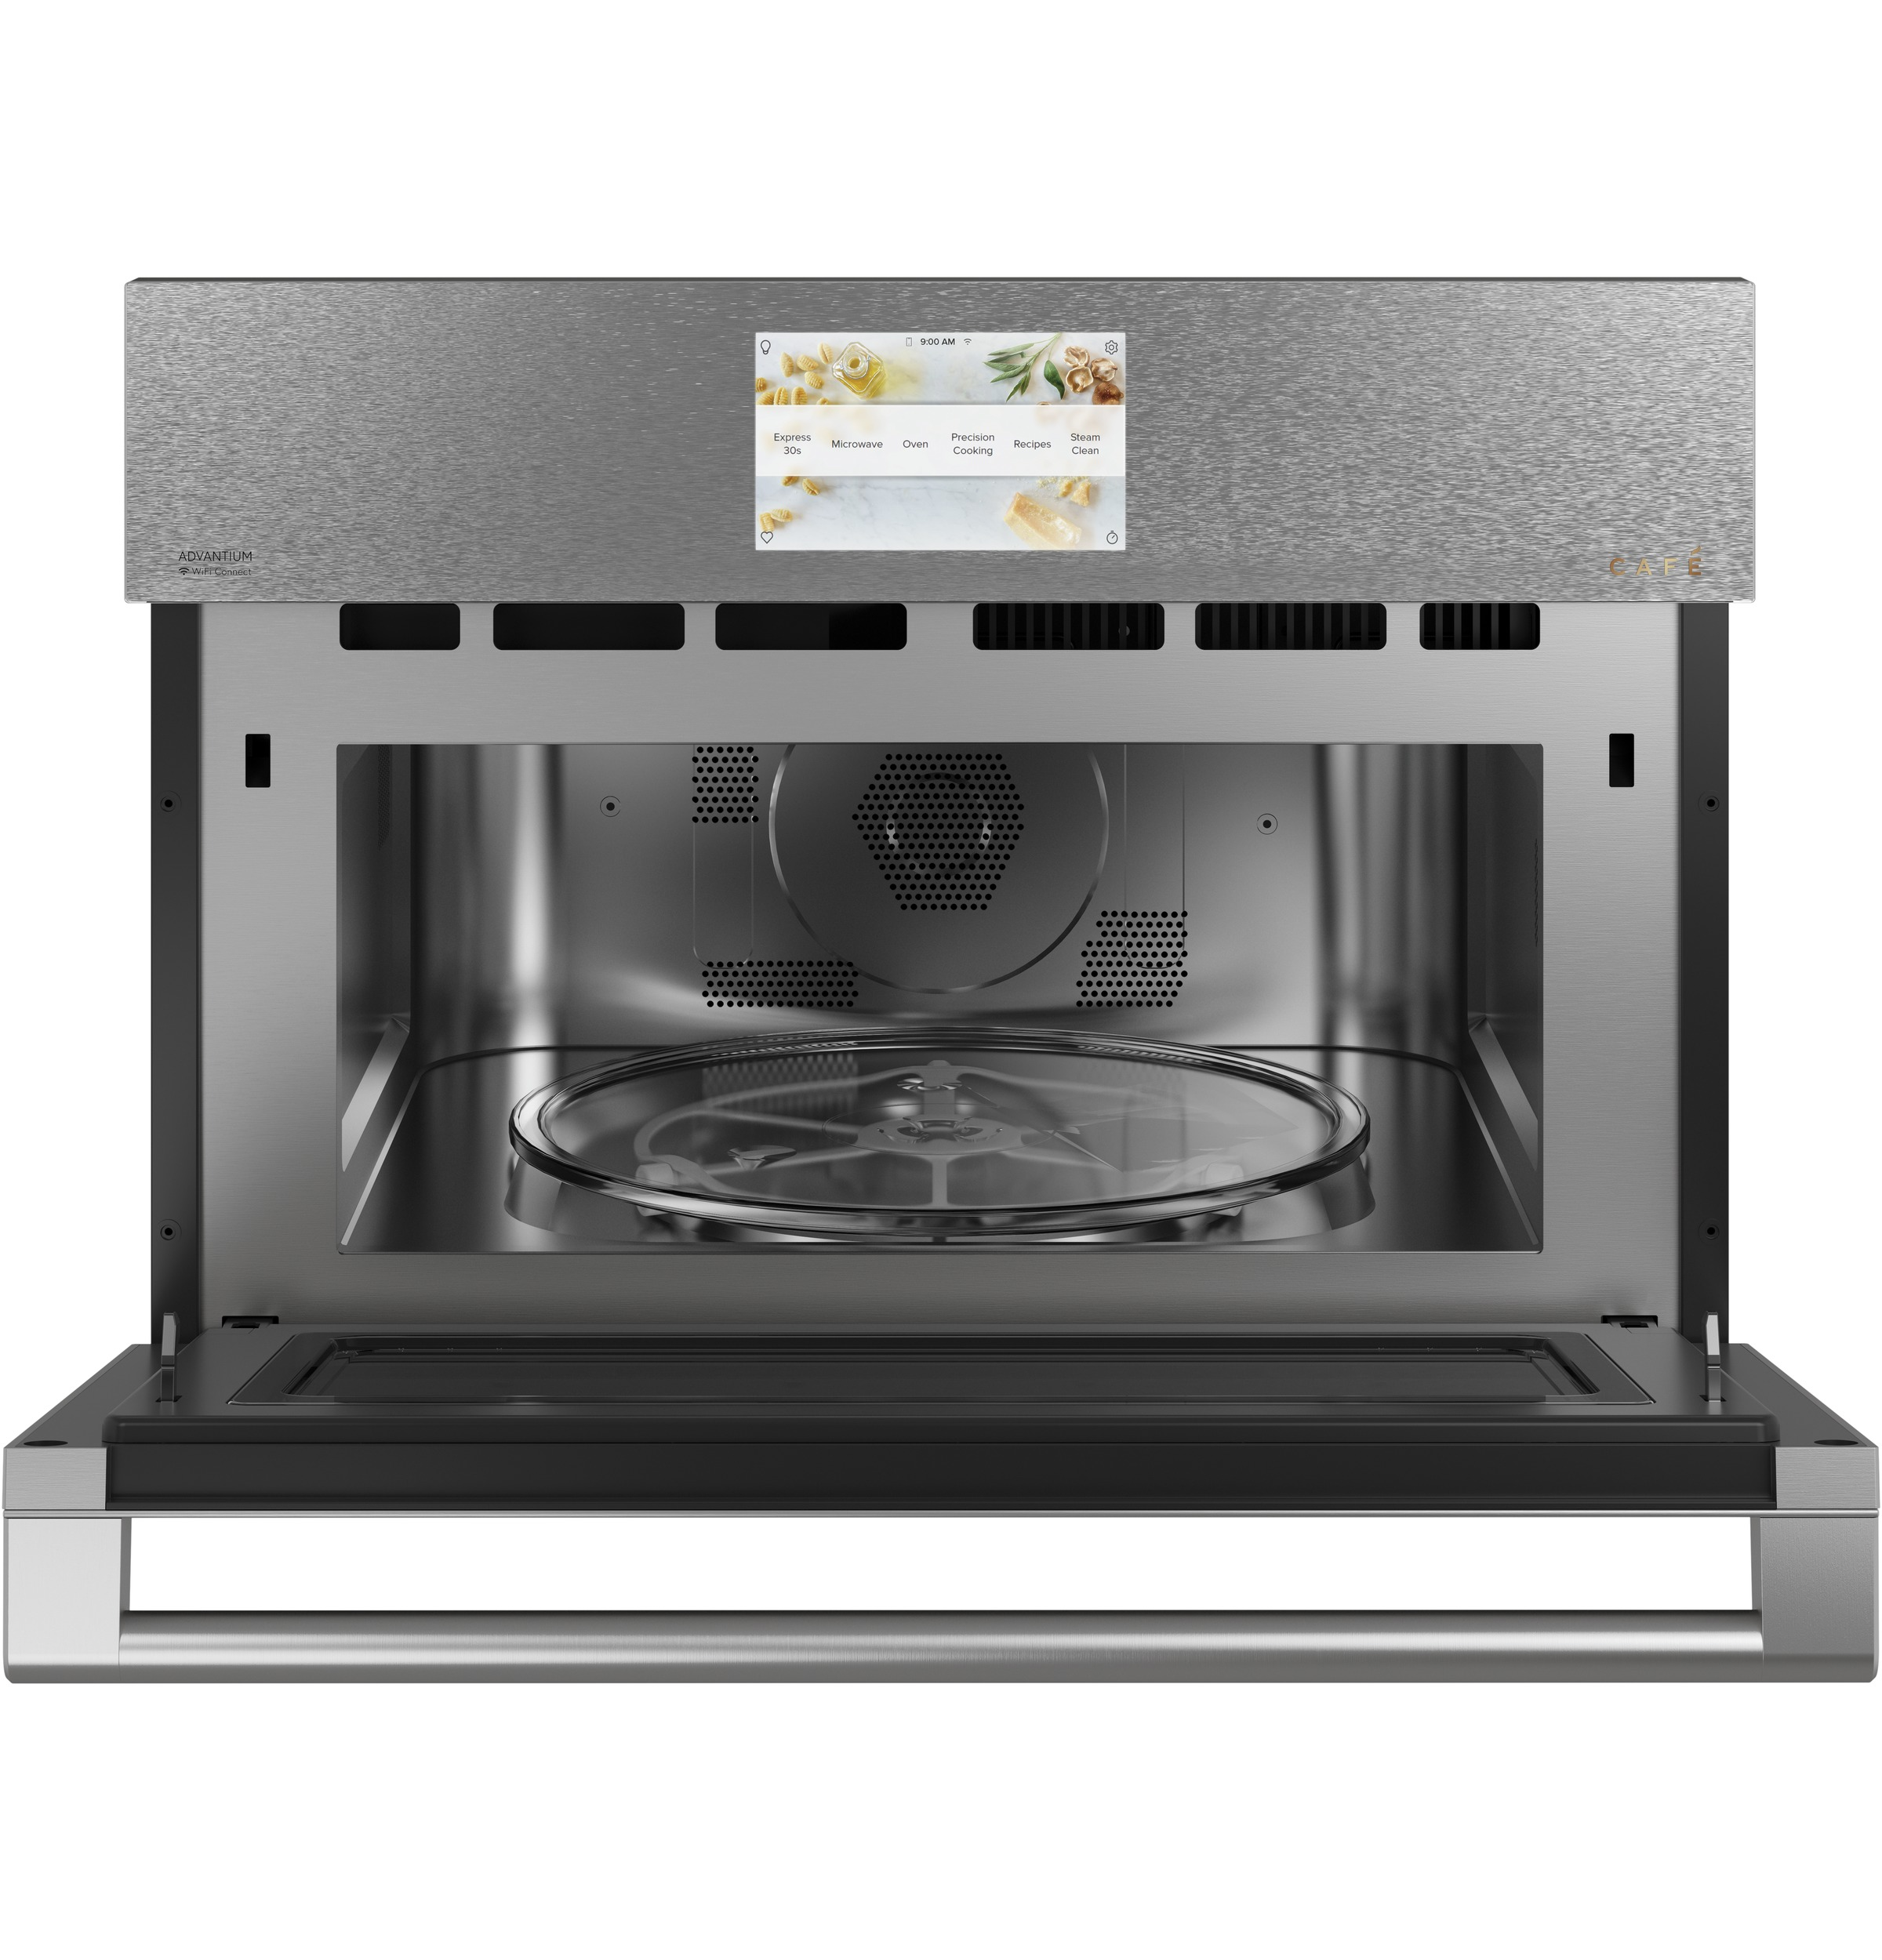 "Model: CSB912M2NS5 | Cafe Cafe™ 27"" Smart Five in One Oven with 120V Advantium® Technology in Platinum Glass"